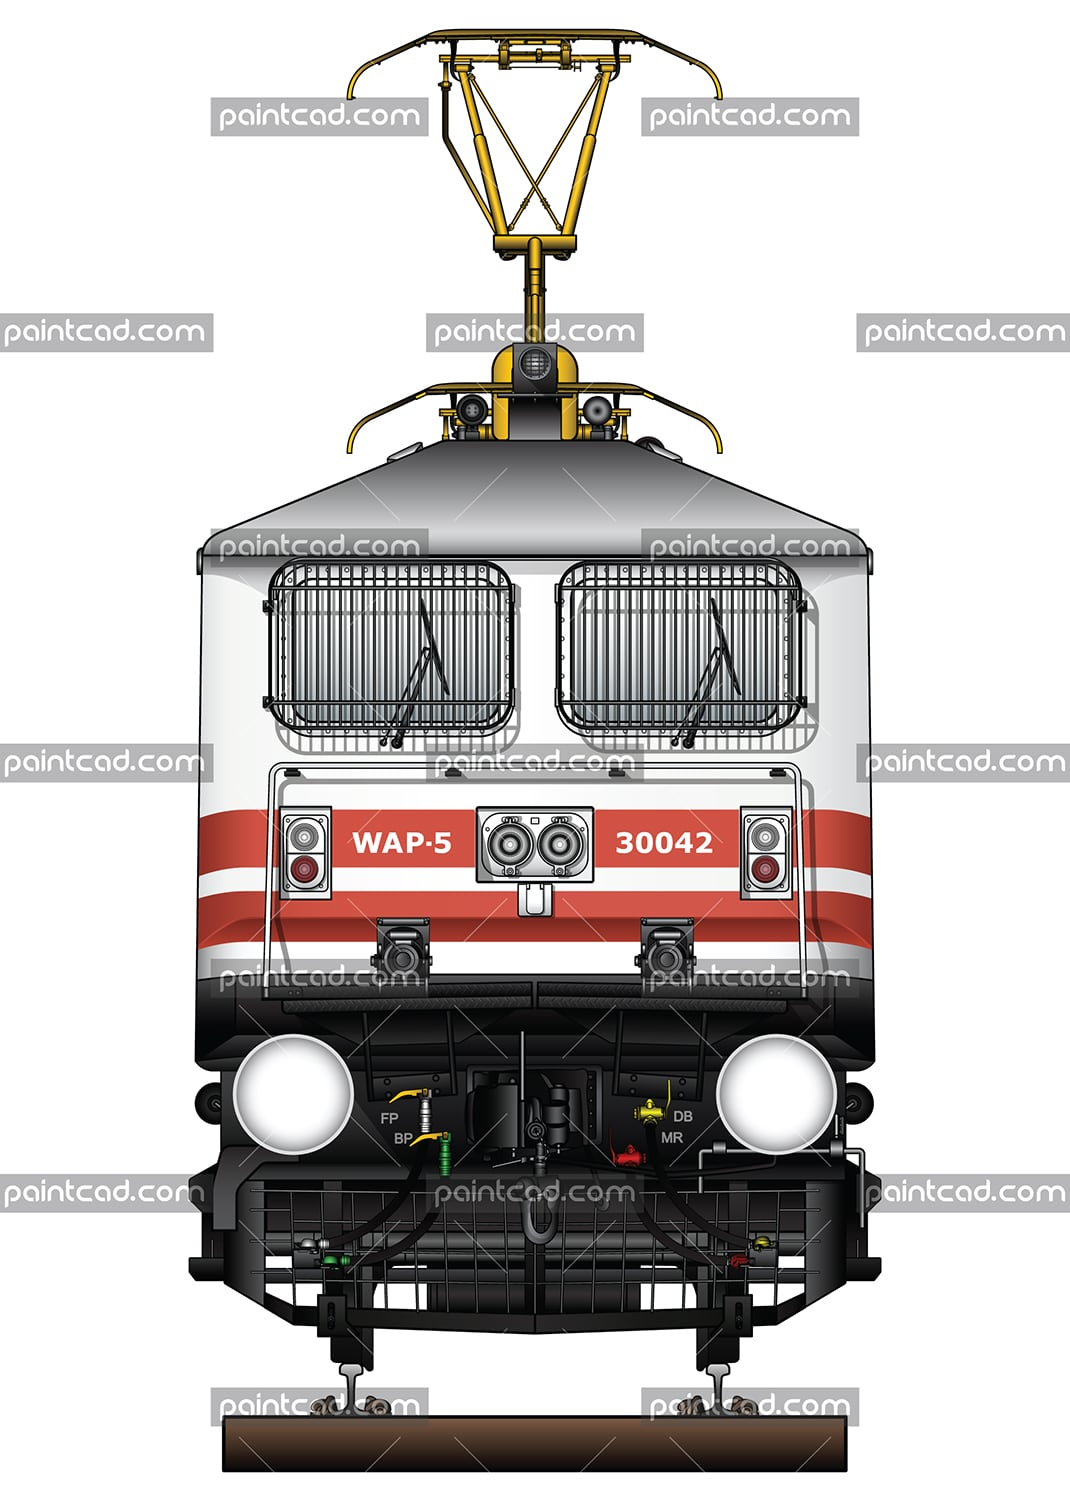 "IMPORTANT: EDITORIAL USE ONLY! Vector illustration with front view of high-speed electric locomotive WAP-5 used in Indian Railways to serve passenger express trains. The engine is equipped with pantograph WBL-85 for high speeds, AAR tightlock couplers and chain link couplers. Abbreviation WAP-5 mean: W - Broad Gauge, A – AC electric traction, P – Passenger and ""5"" - the serial number of the modification of locomotive. Detailed color drawing with all technical inscriptions. Isolated object over white background."